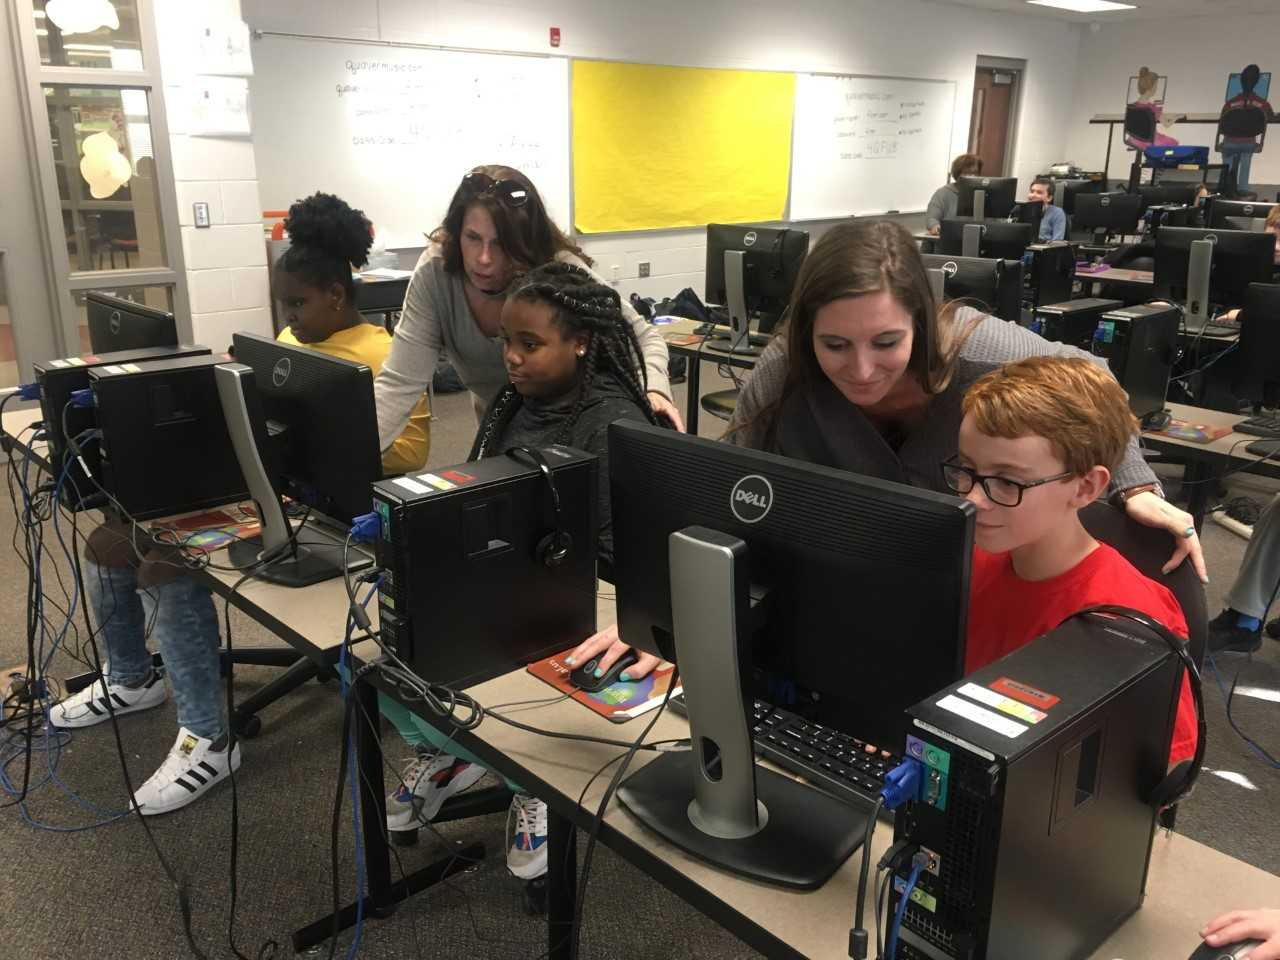 Teachers helping students on computers